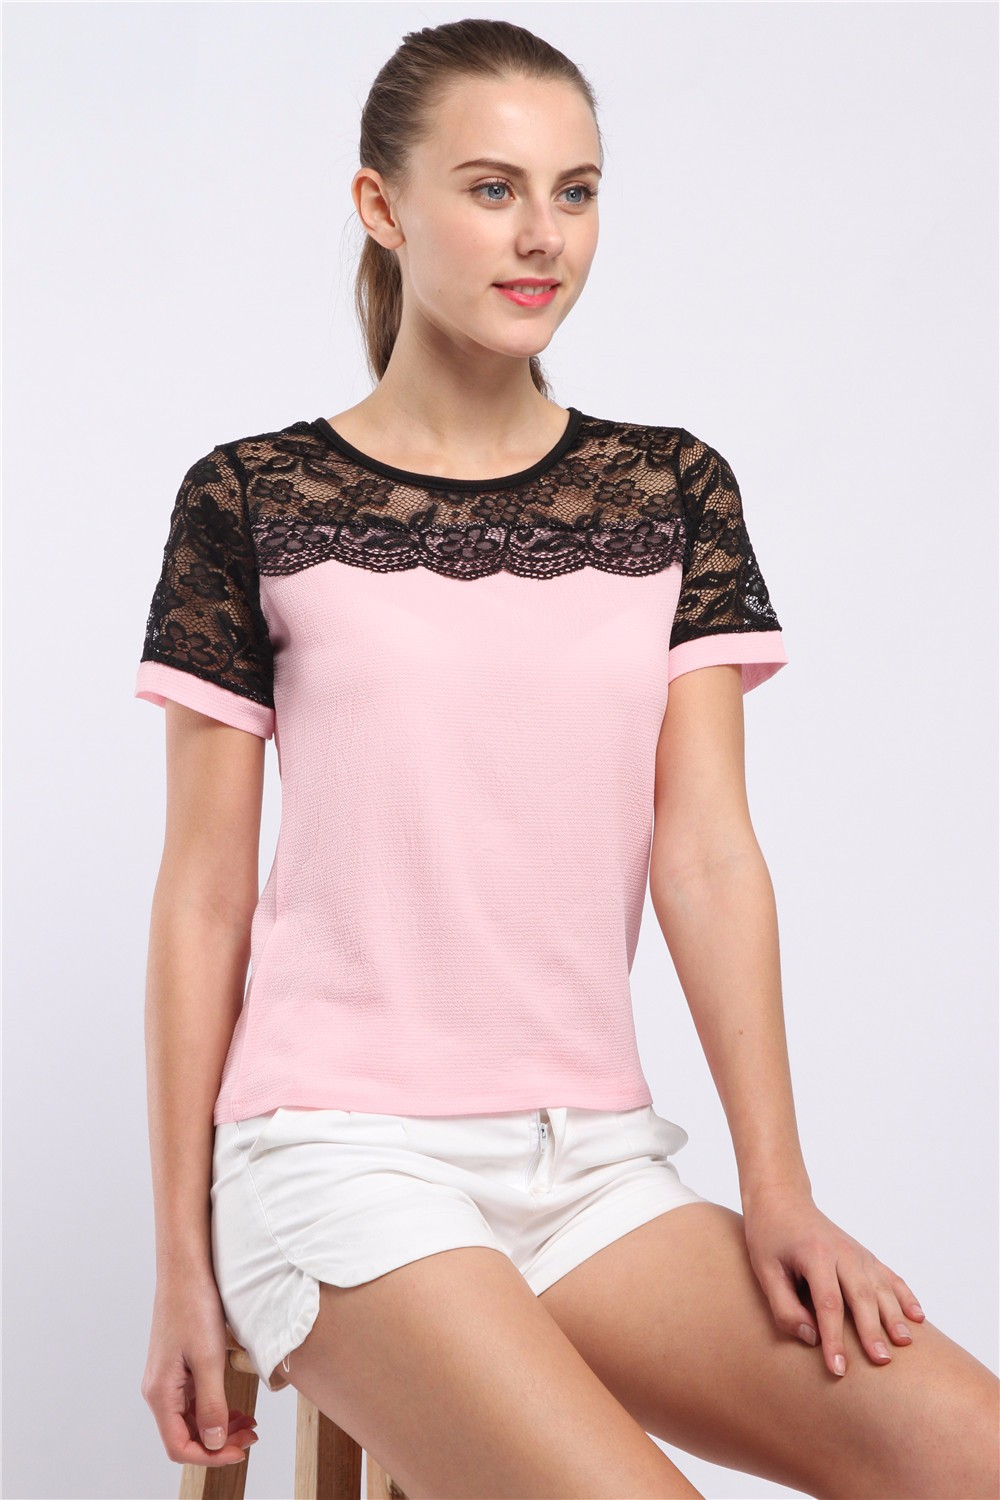 Women Blouses Summer Lace Chiffon Blouse Casual Blusa Feminina Tops Fashion Chemise Femme Shirts Plus Size 5XL Red White Pink 14